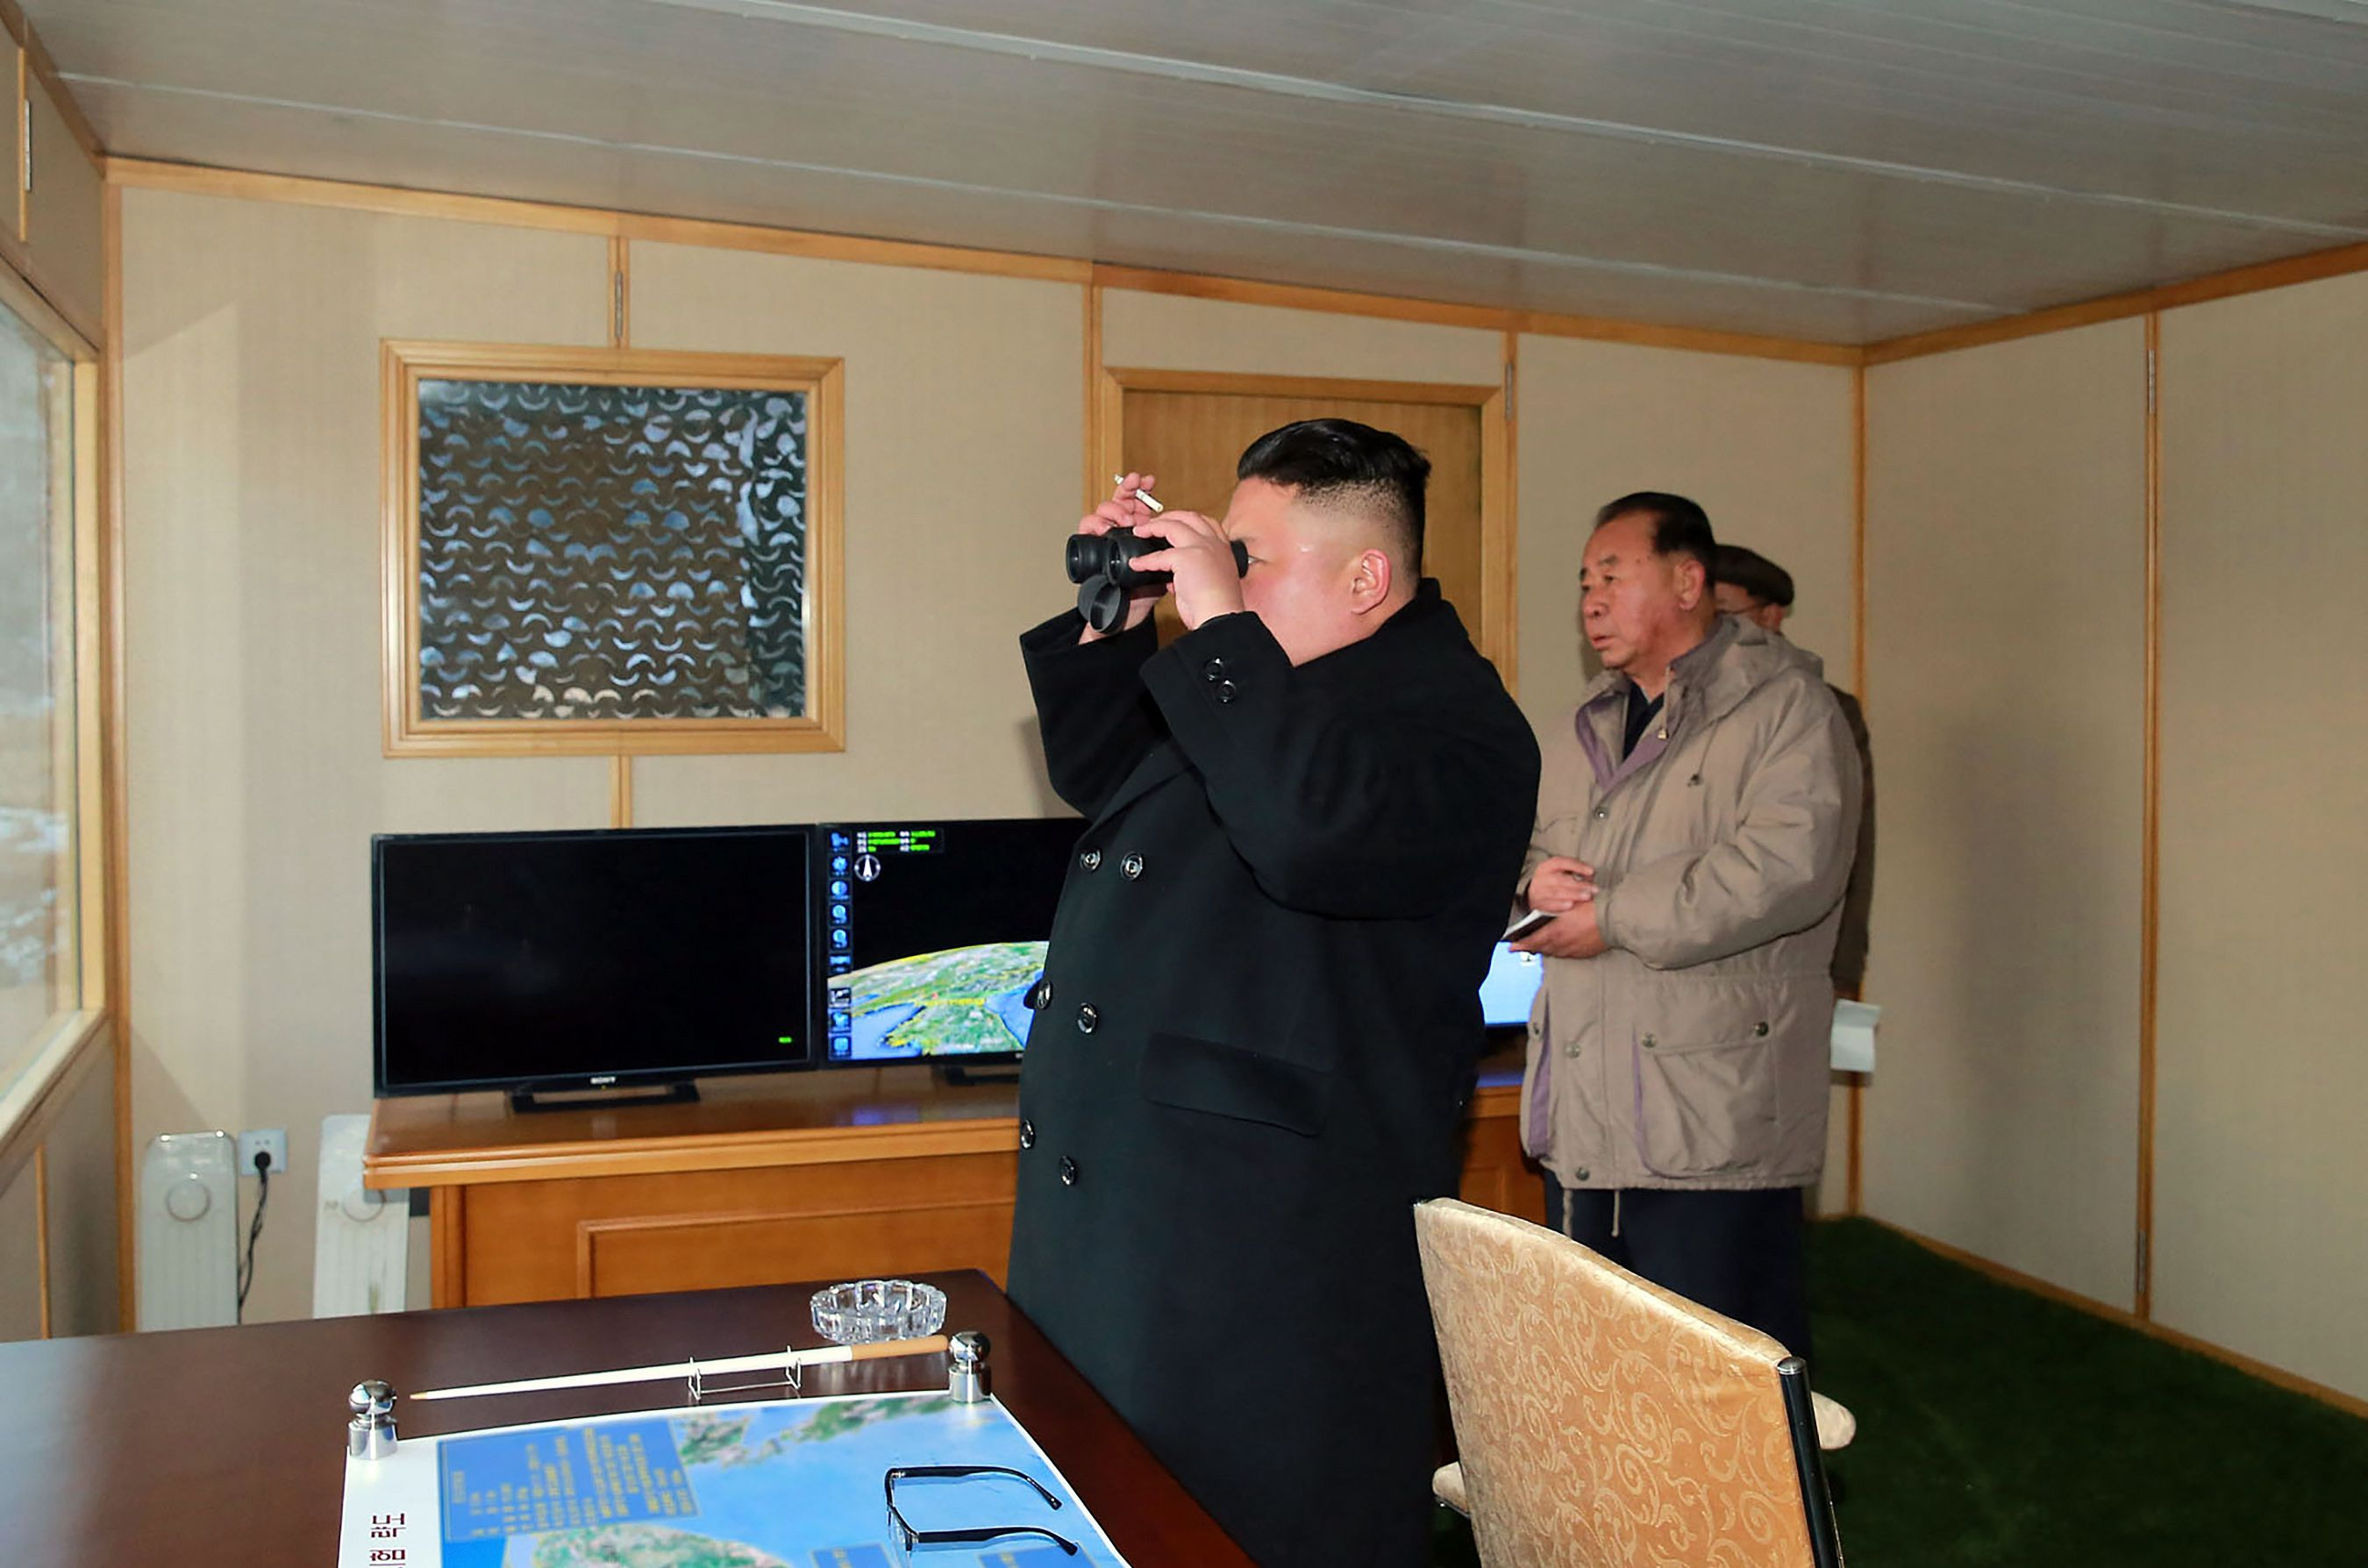 Kim Jong-un looks through binoculars.